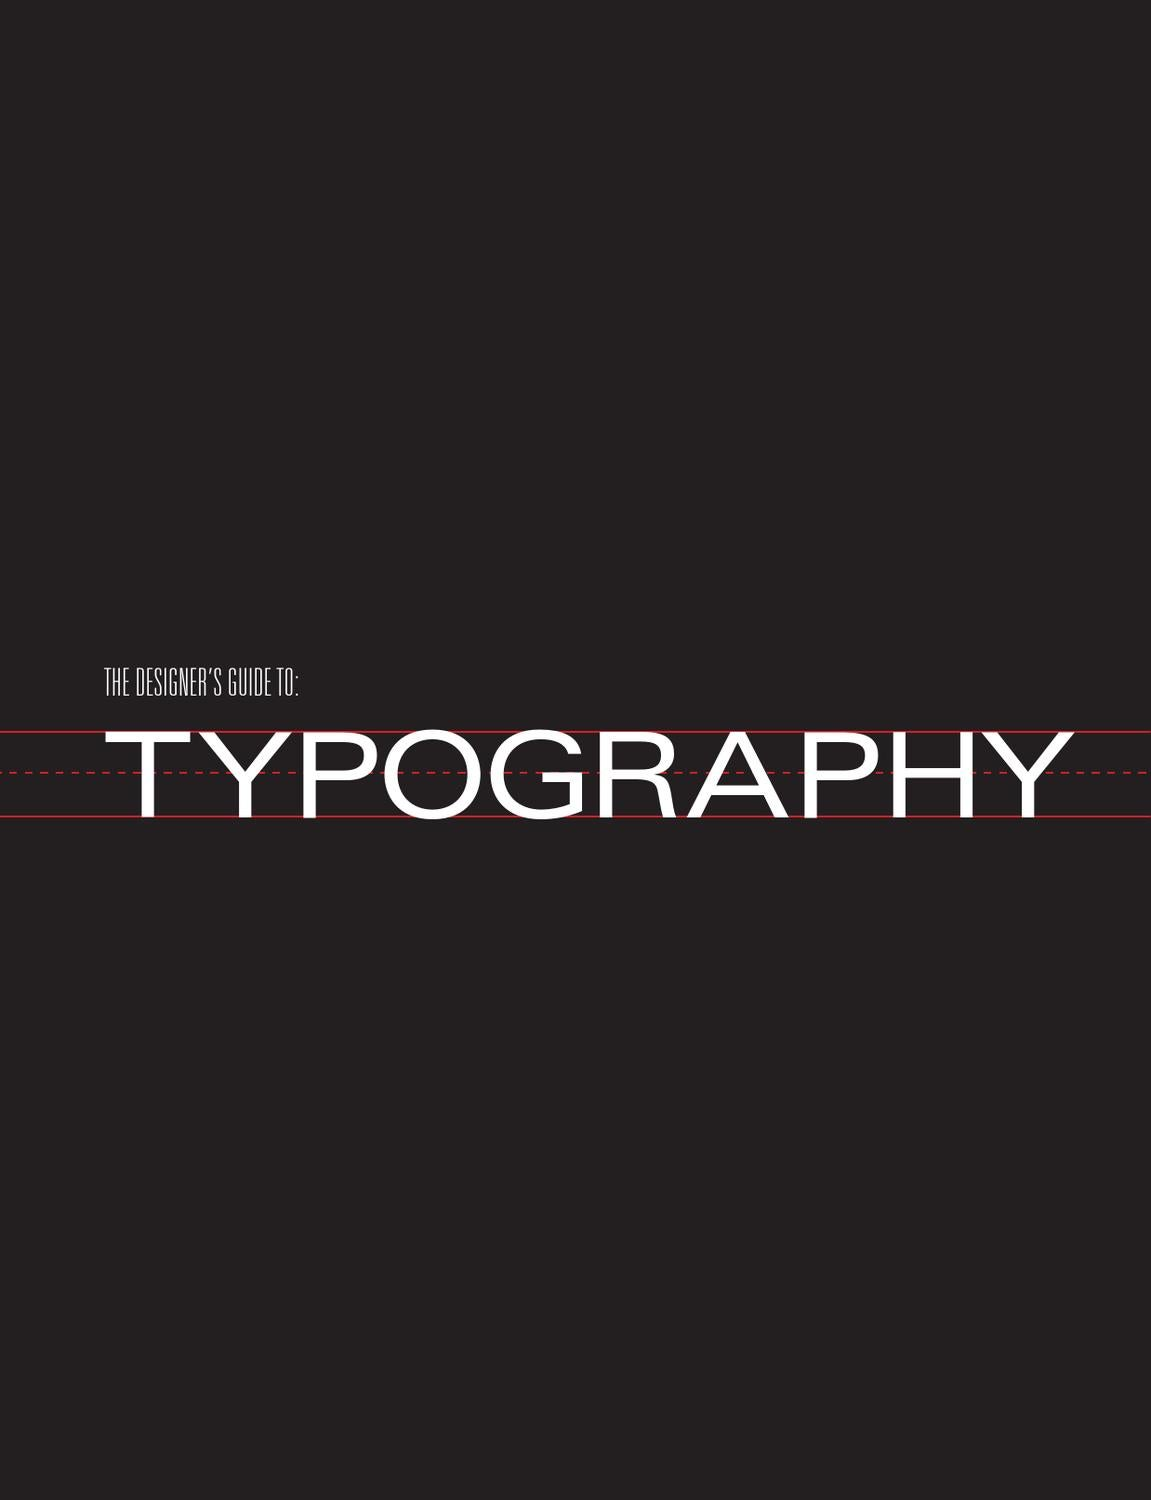 The Designer's Guide to Typography by Amber Peebles - issuu